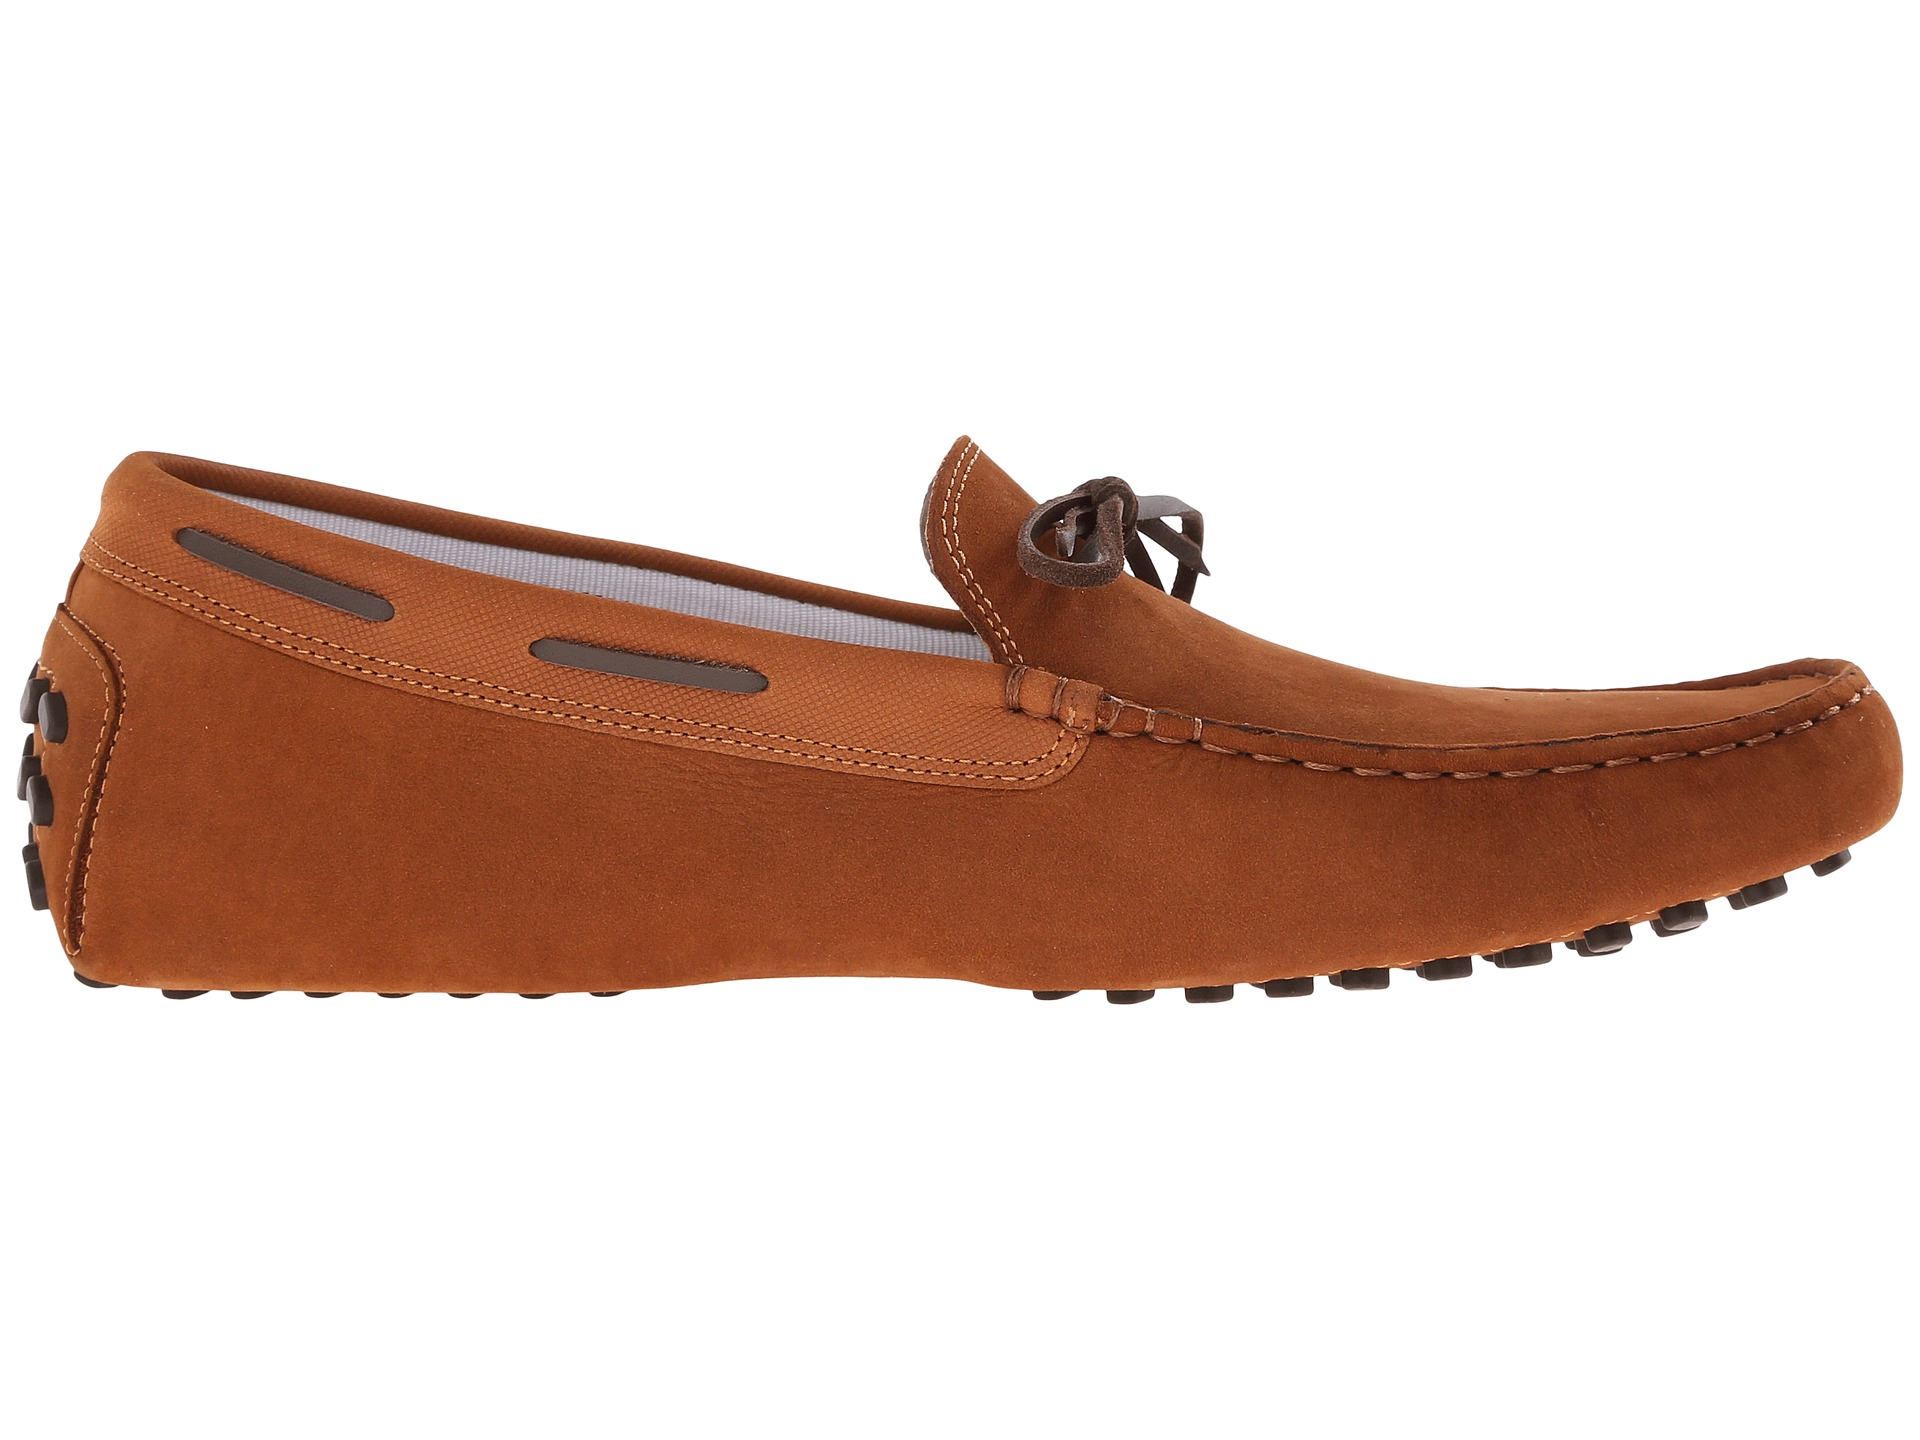 a64baeefe1b15 Lyst - Lacoste Concours Lace 116 1 in Brown for Men